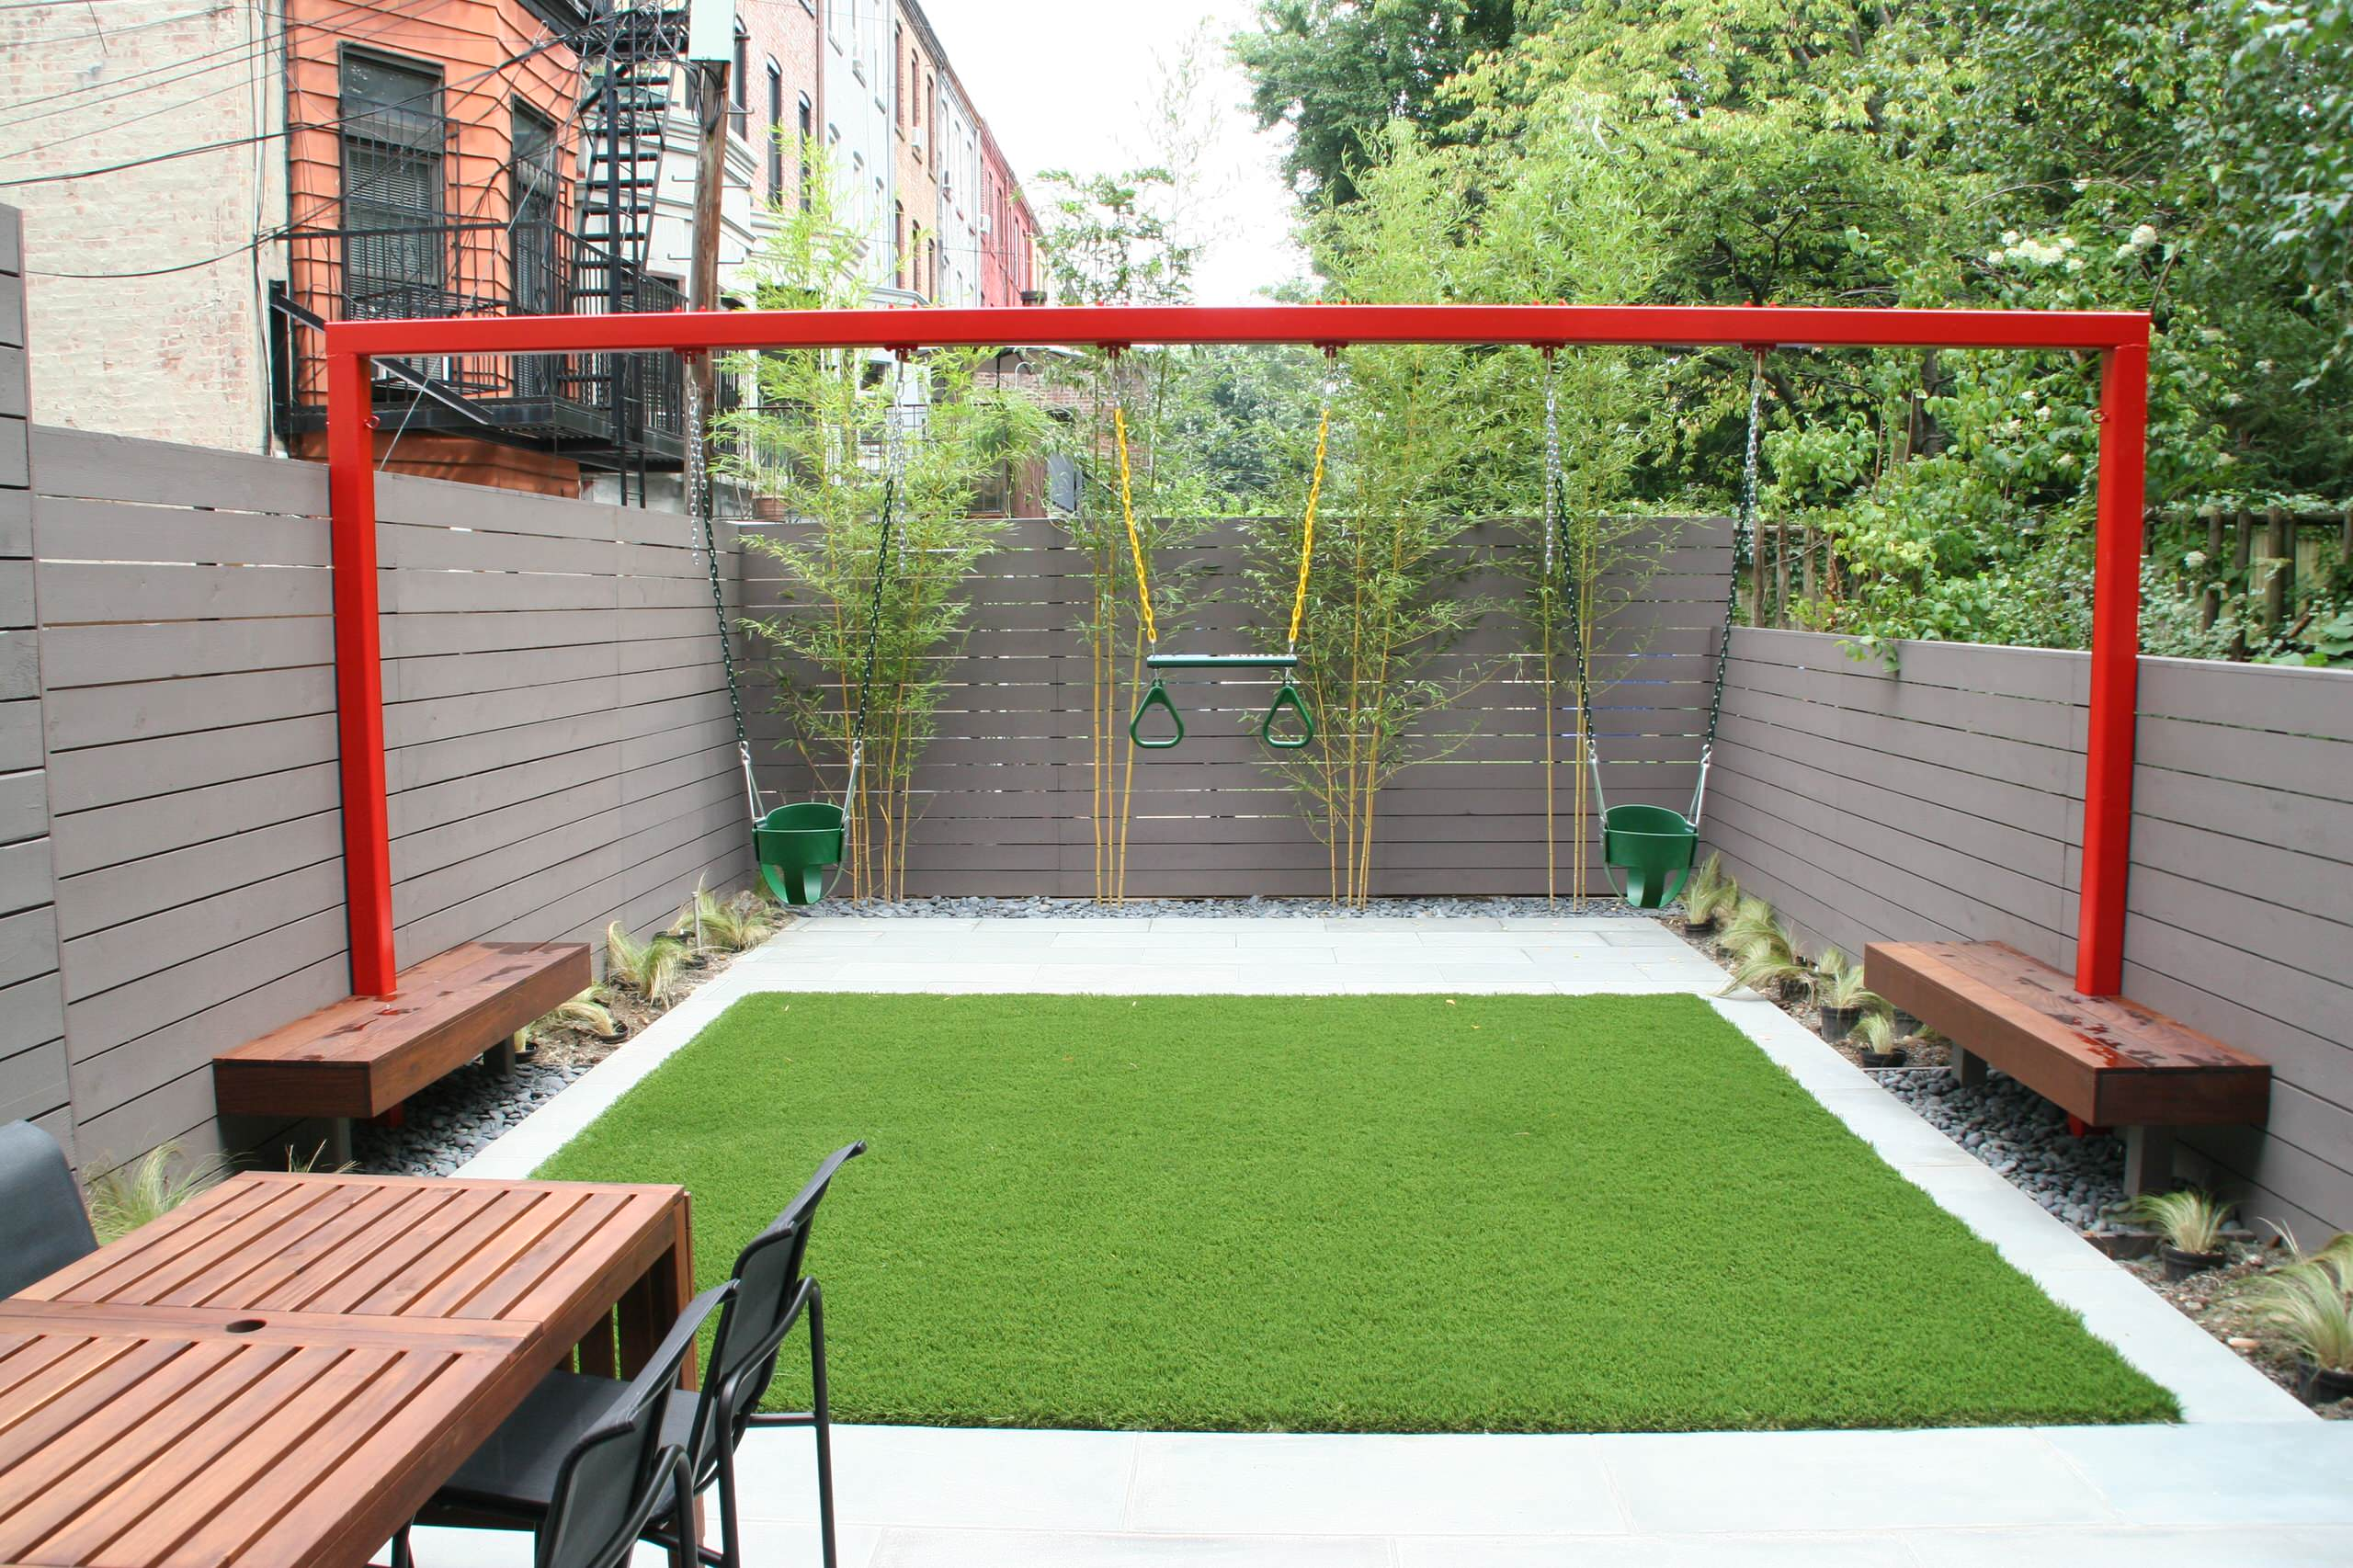 Exciting Backyard Design Ideas With Swing Sets: Small Backyard Ideas With  Backyard Fence And Built